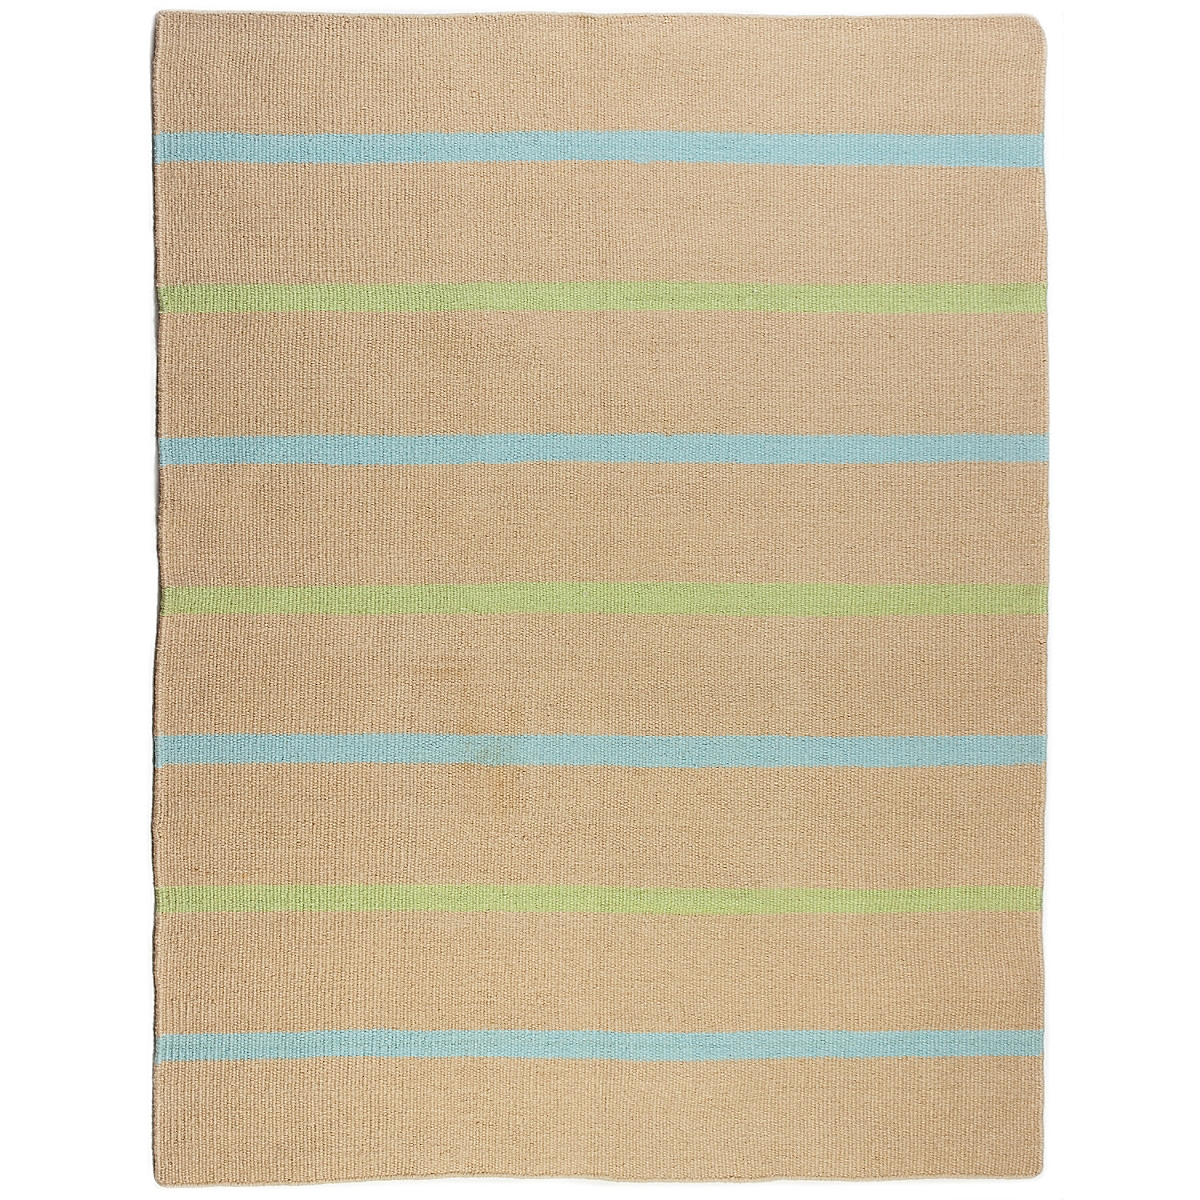 Sand Key Wool Berber Striped Rug